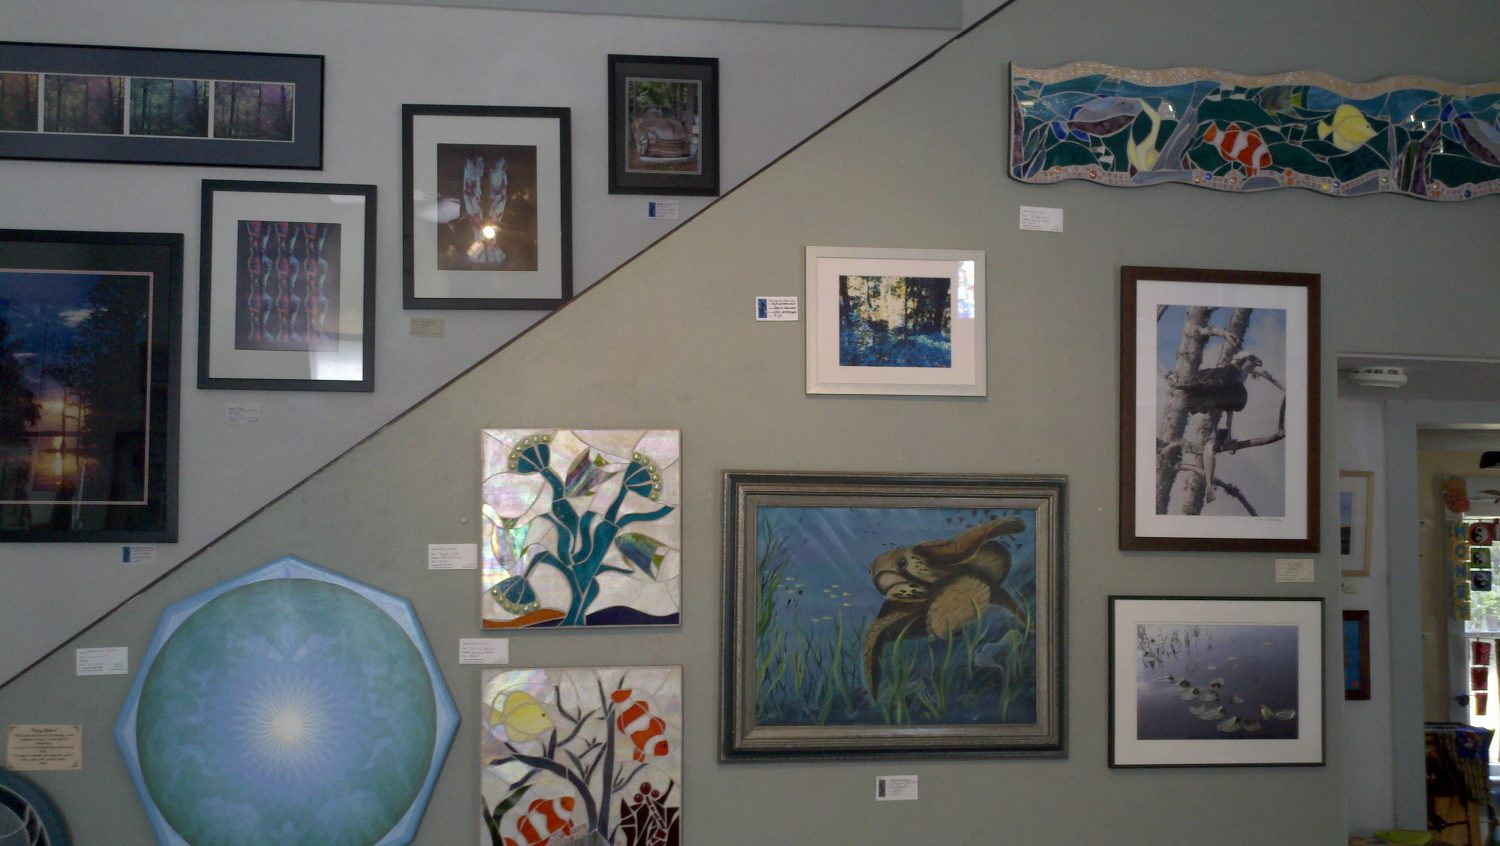 Artwork is displayed on the walls of the Shake Rag Art & Culture Center.